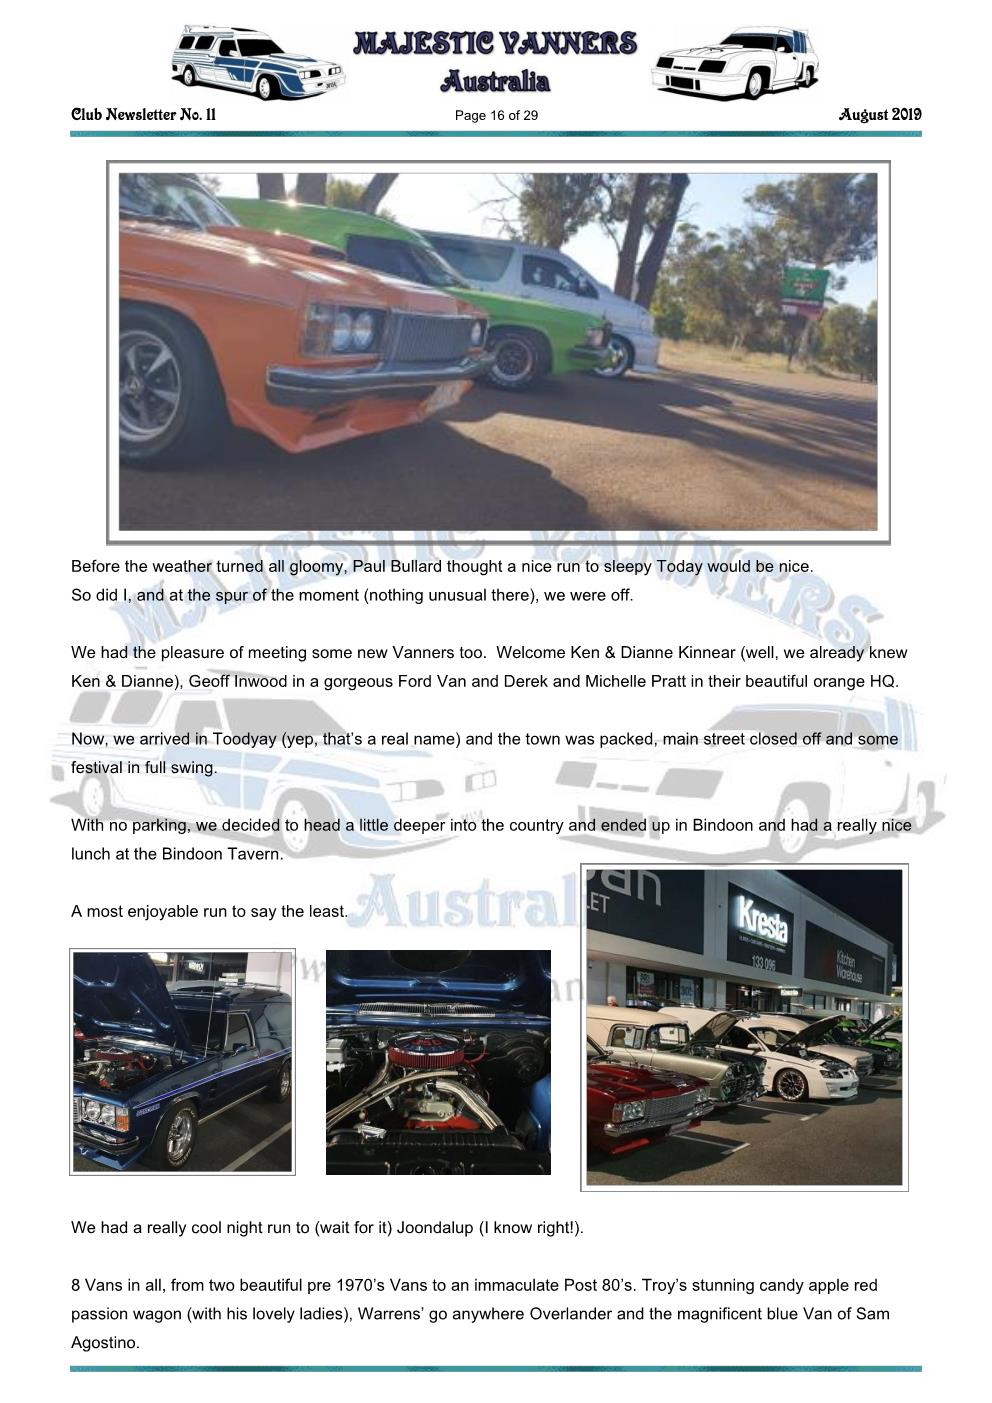 MAJESTIC VANNERS Newsletter Issue No: 11 August 2019 Mv_new55